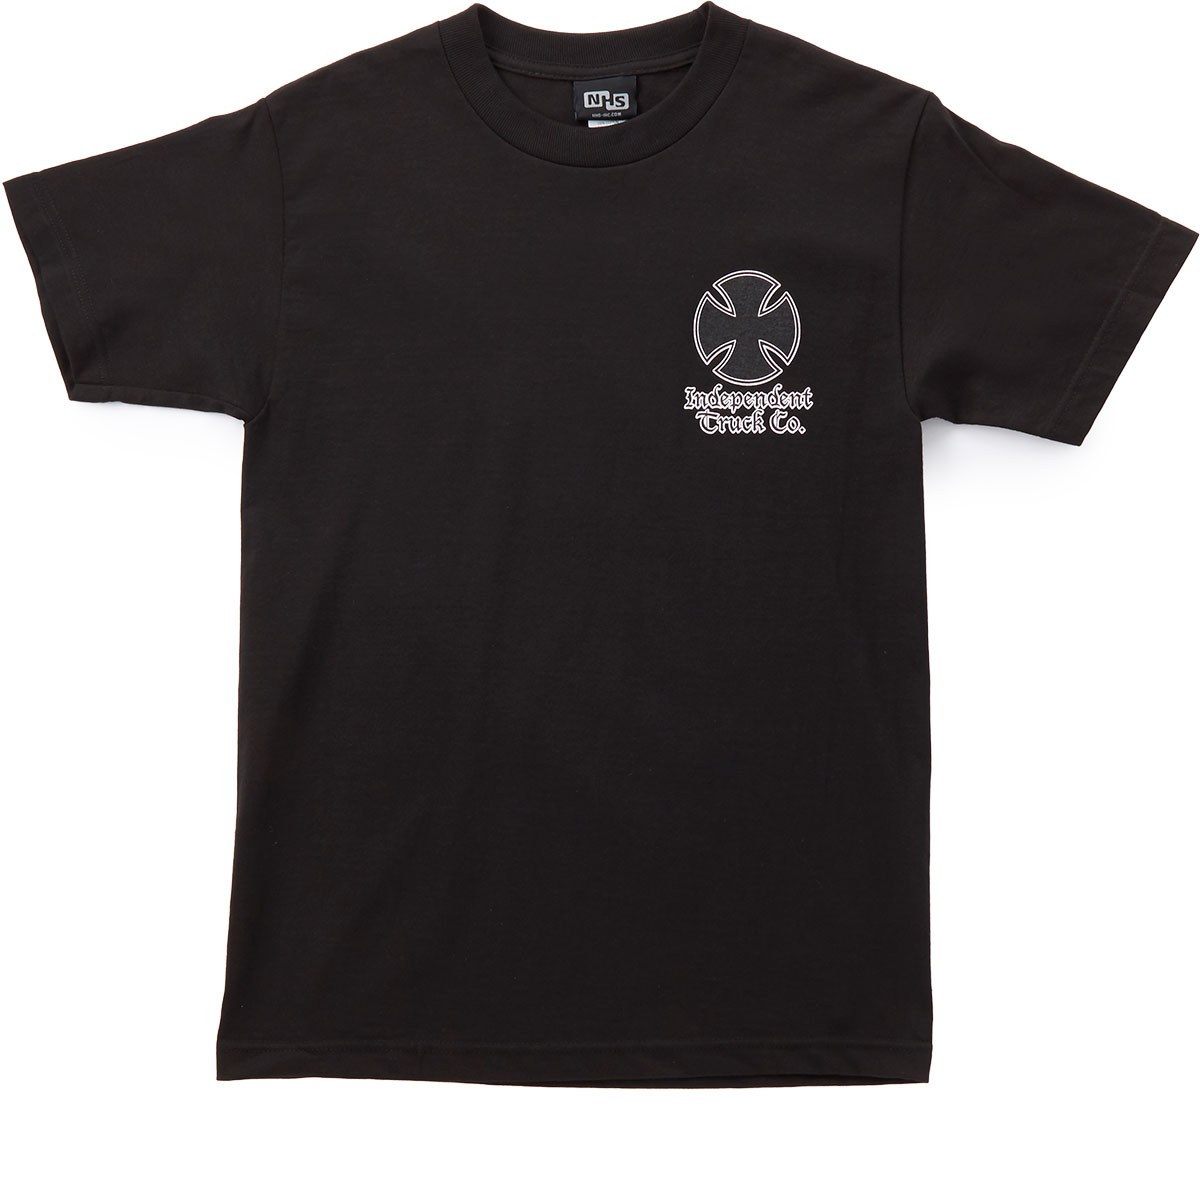 Independent Time Is Short T-Shirt - Black